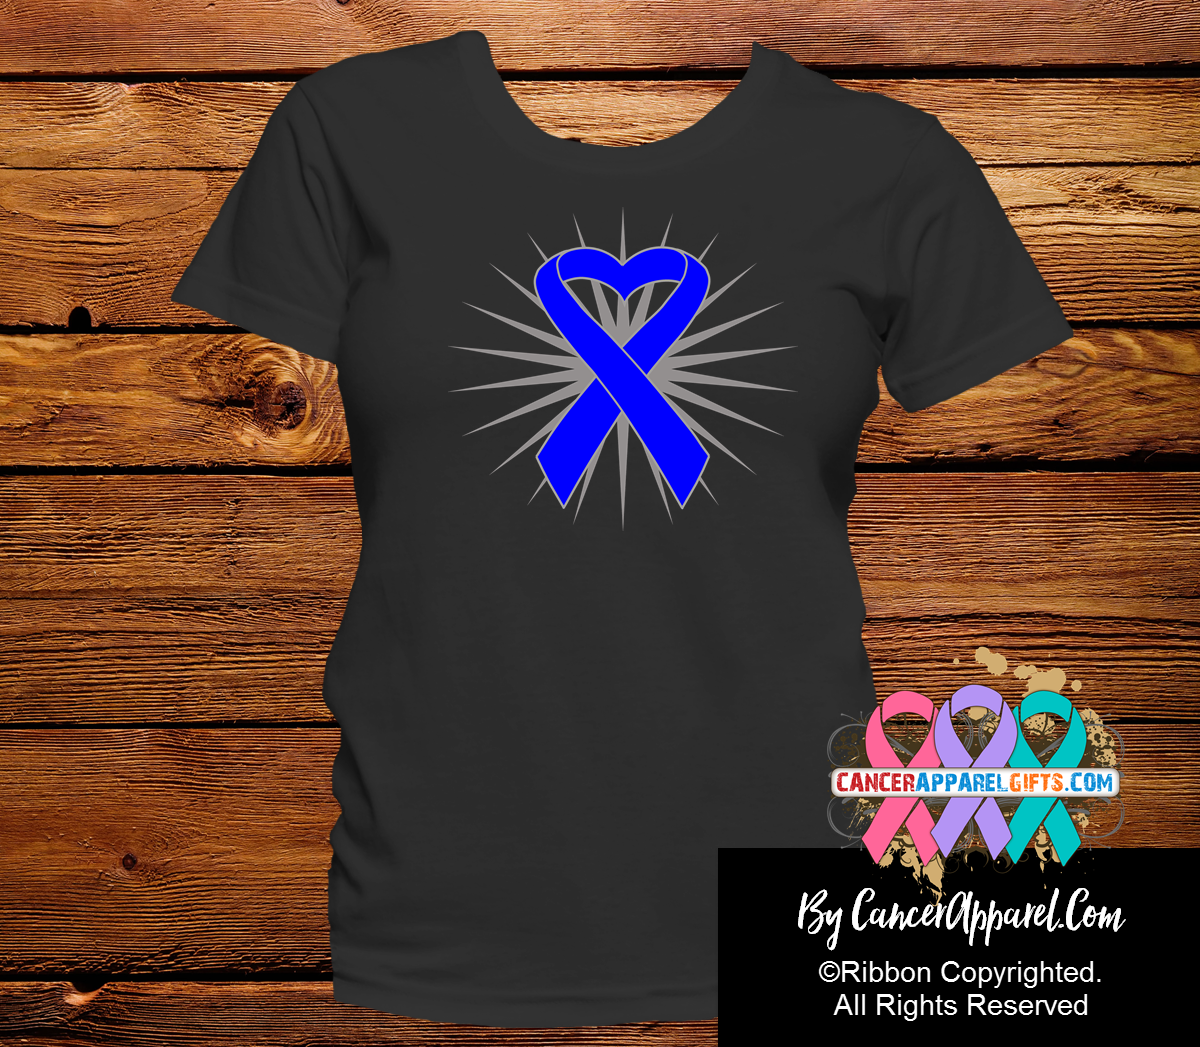 Colon Cancer Awareness Heart Ribbon Shirts - Cancer Apparel and Gifts